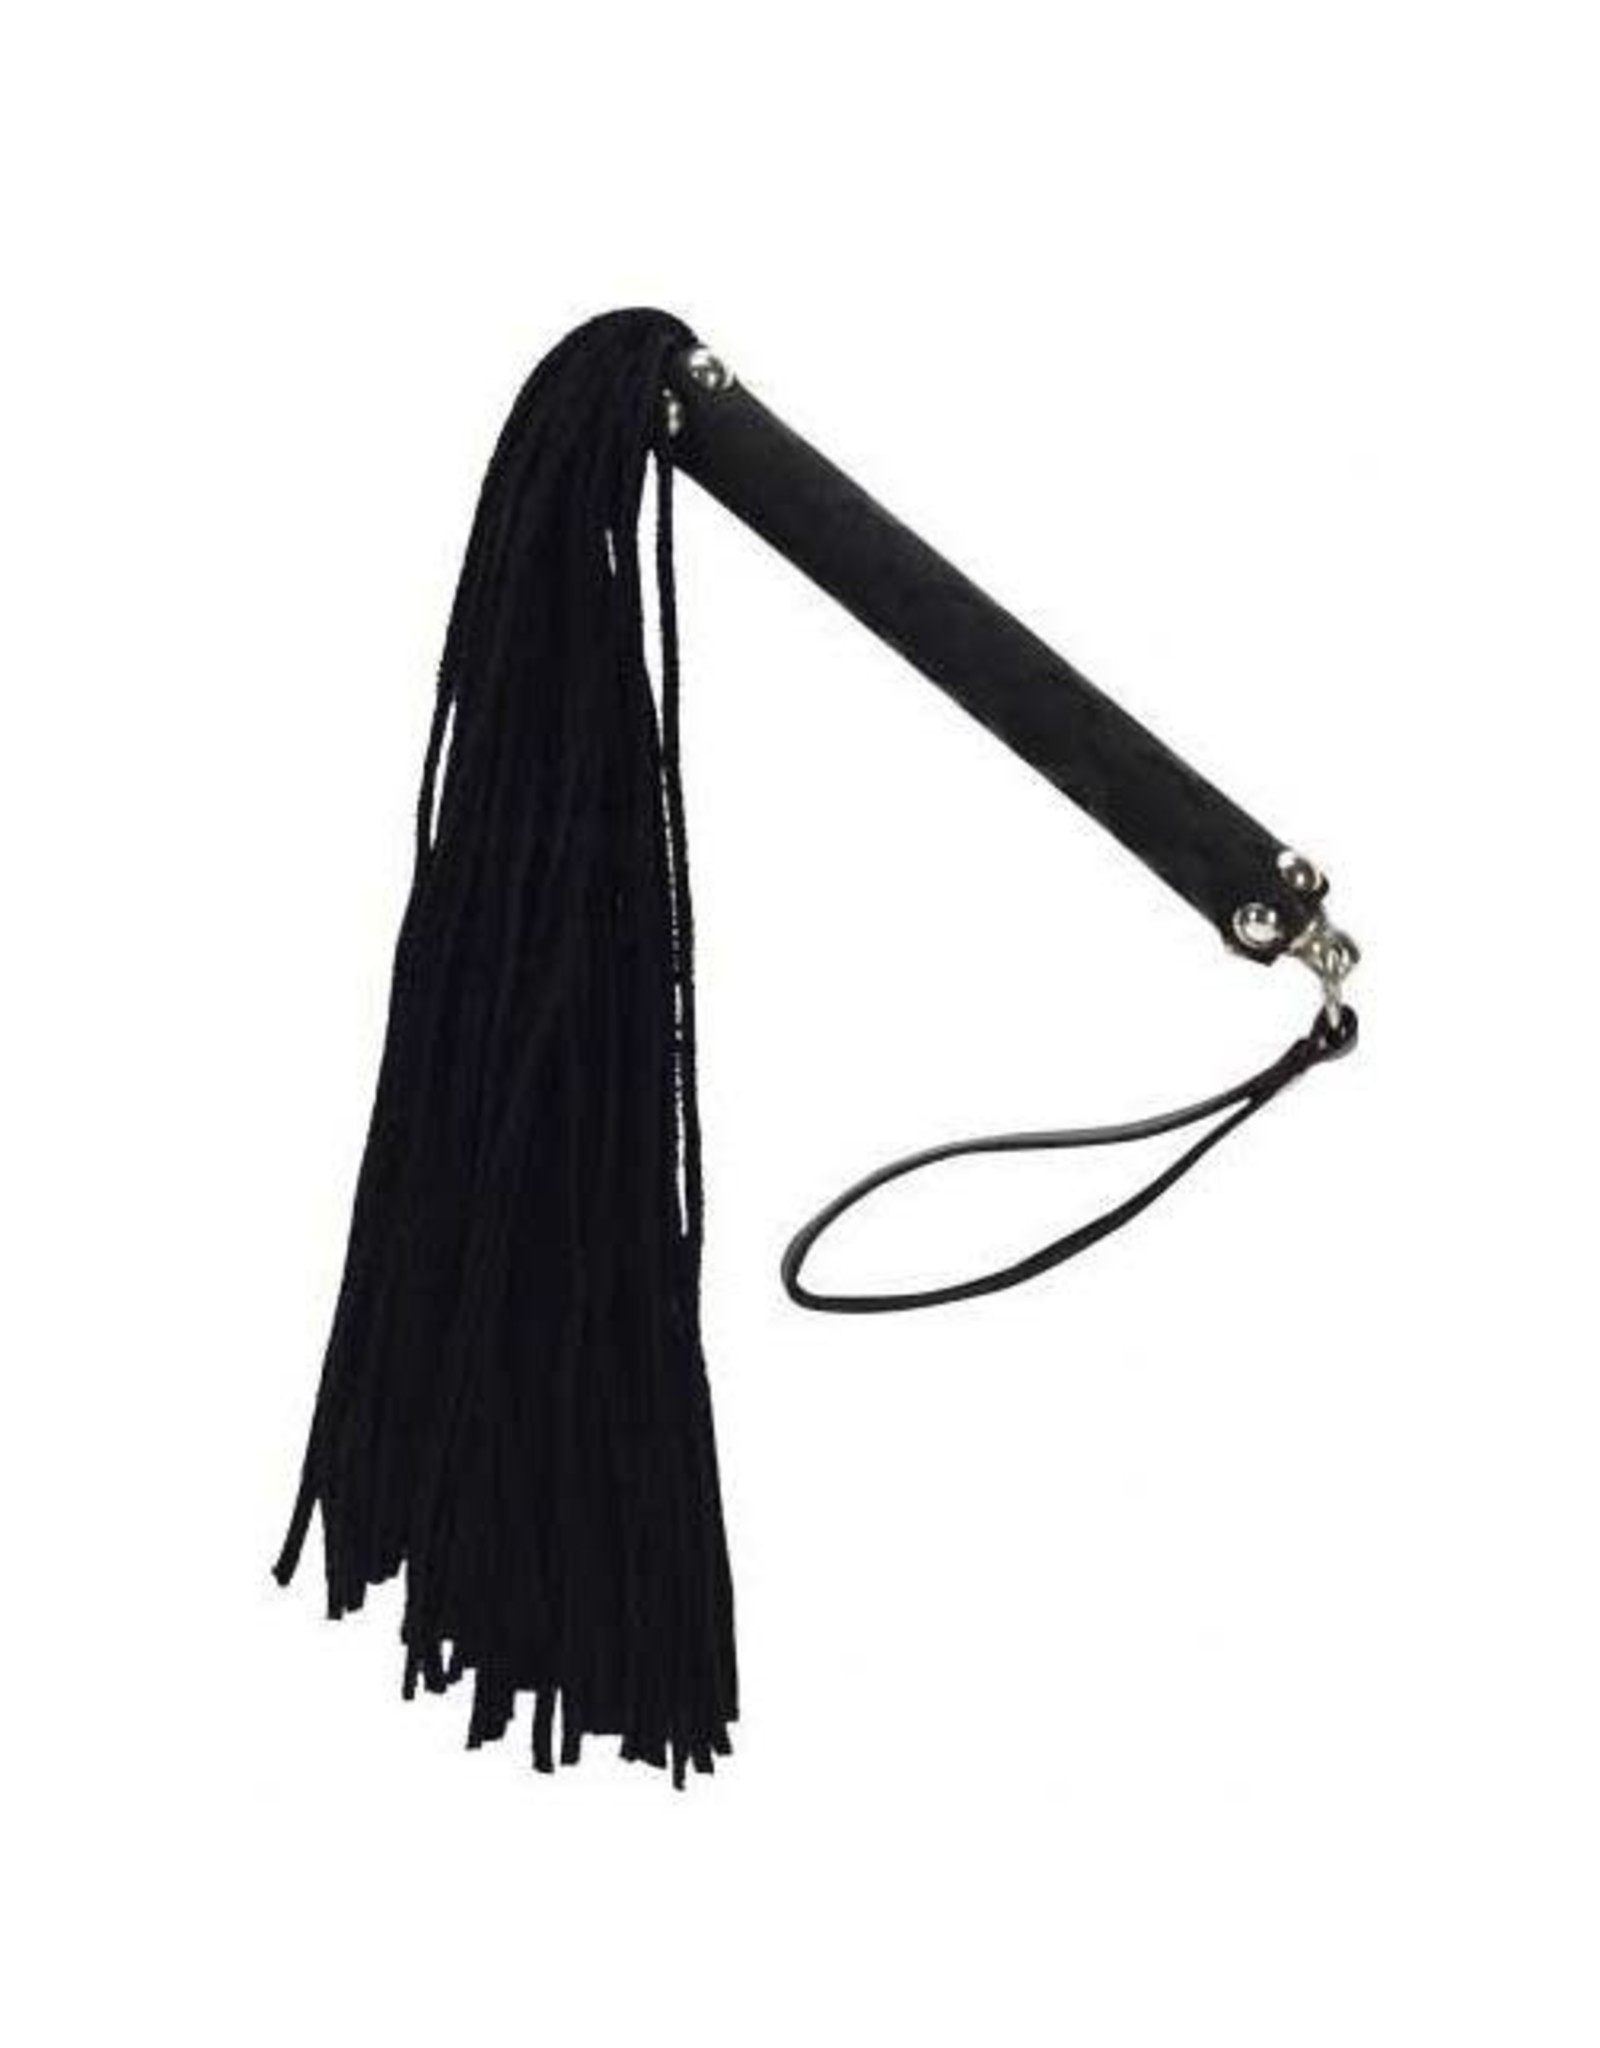 SMALL WHIP - BLACK